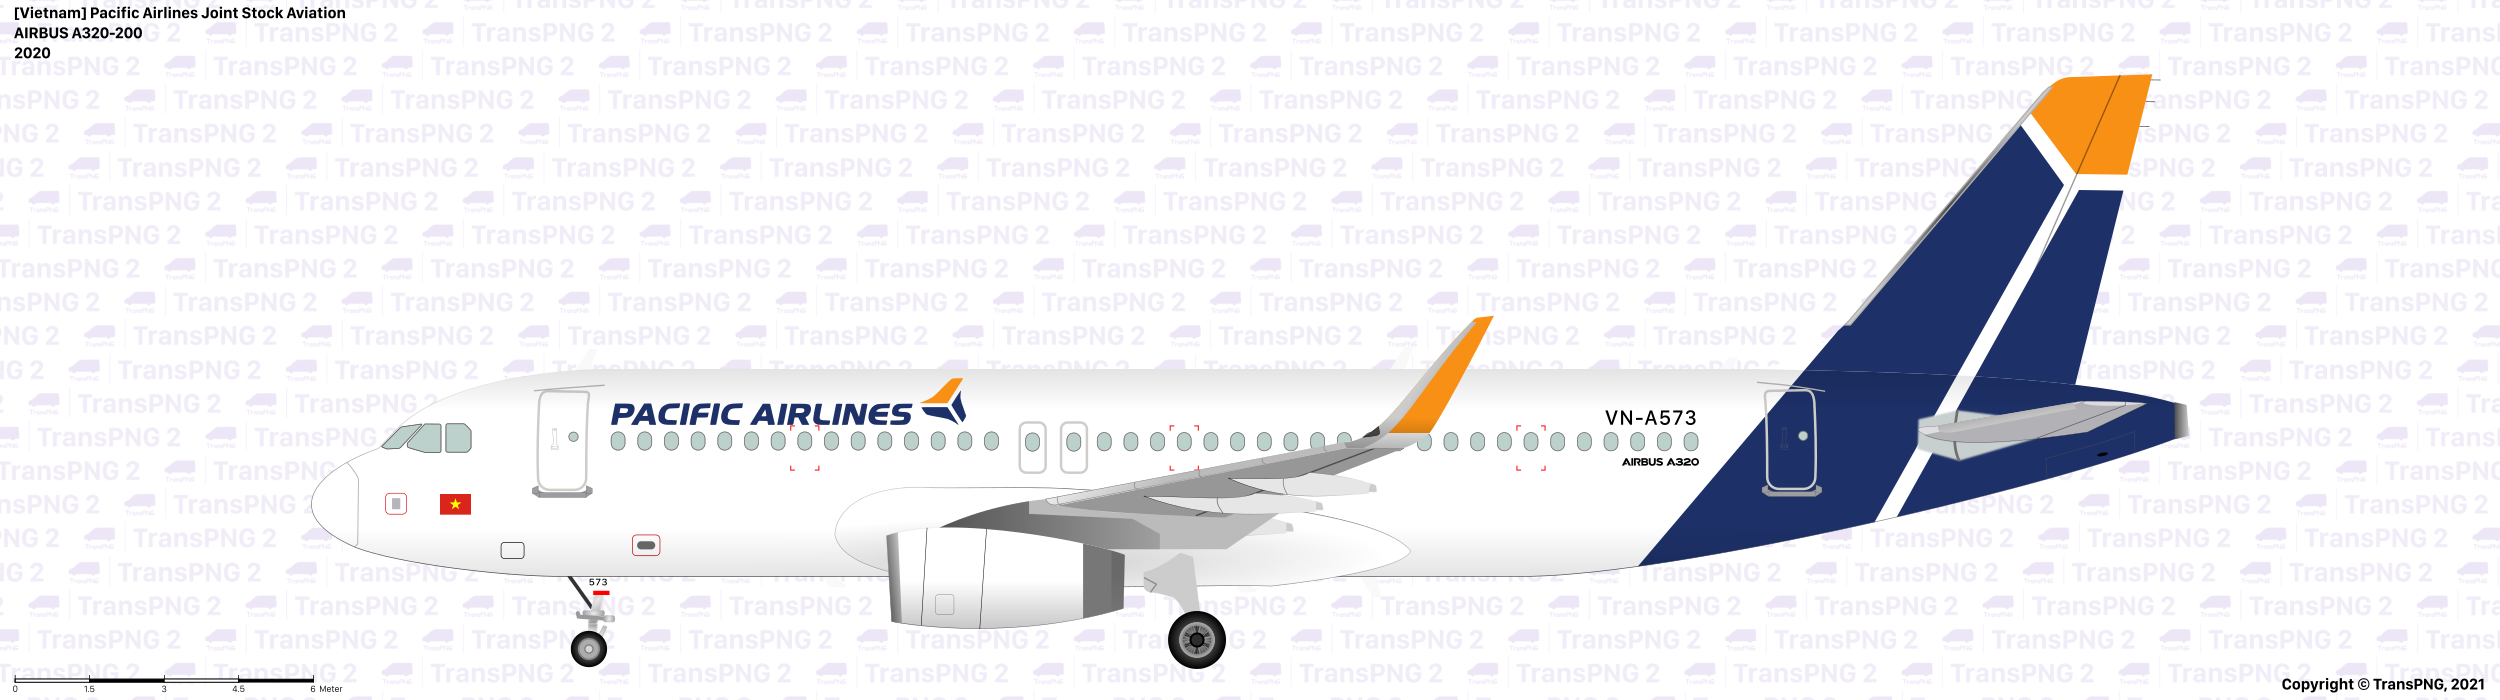 [25092] Pacific Airlines Joint Stock Aviation 25092